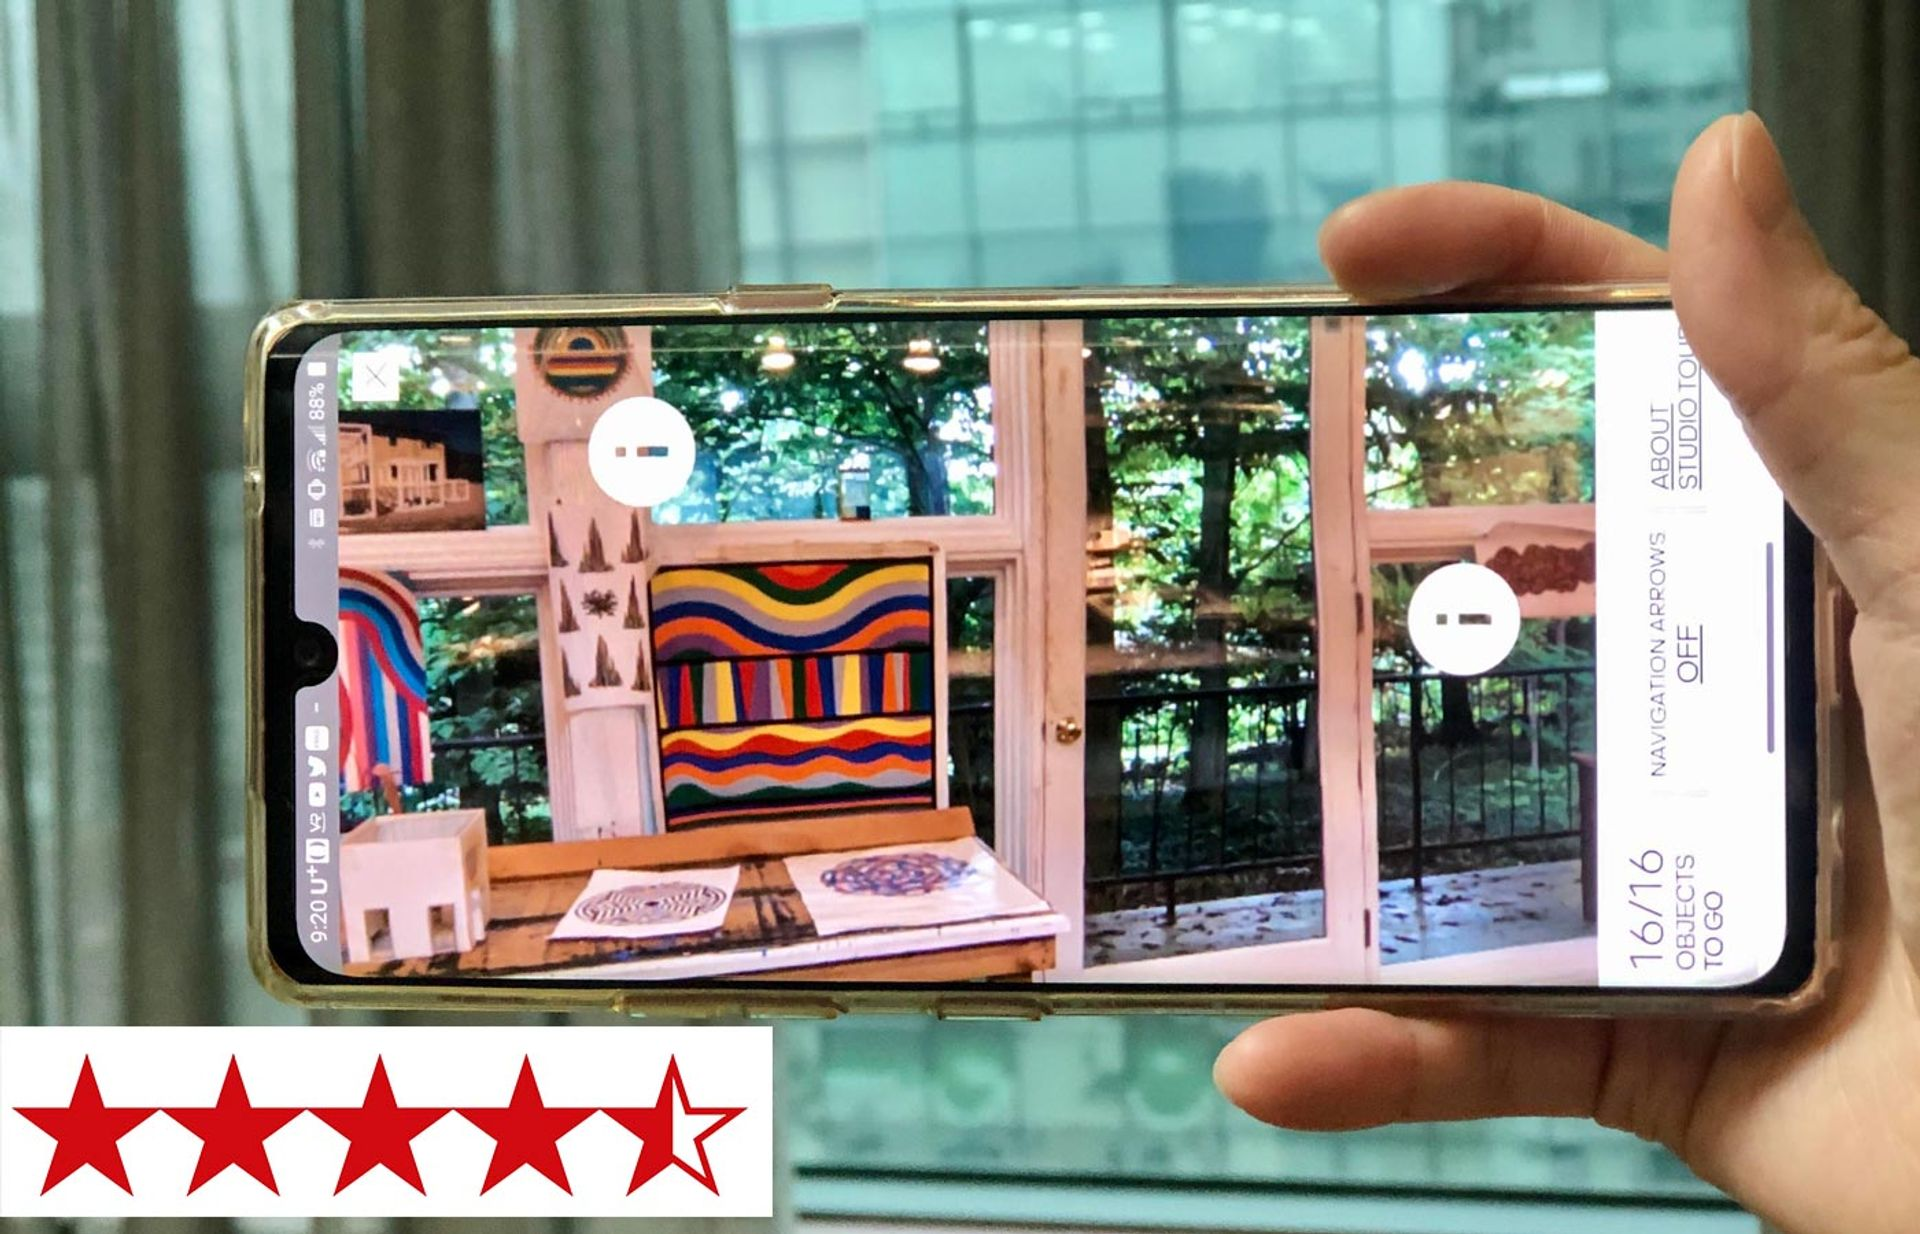 The Sol LeWitt AR app, authored and curated by the LeWitt specialist Lindsay Aveilhé, is available on the App Store and Google Play